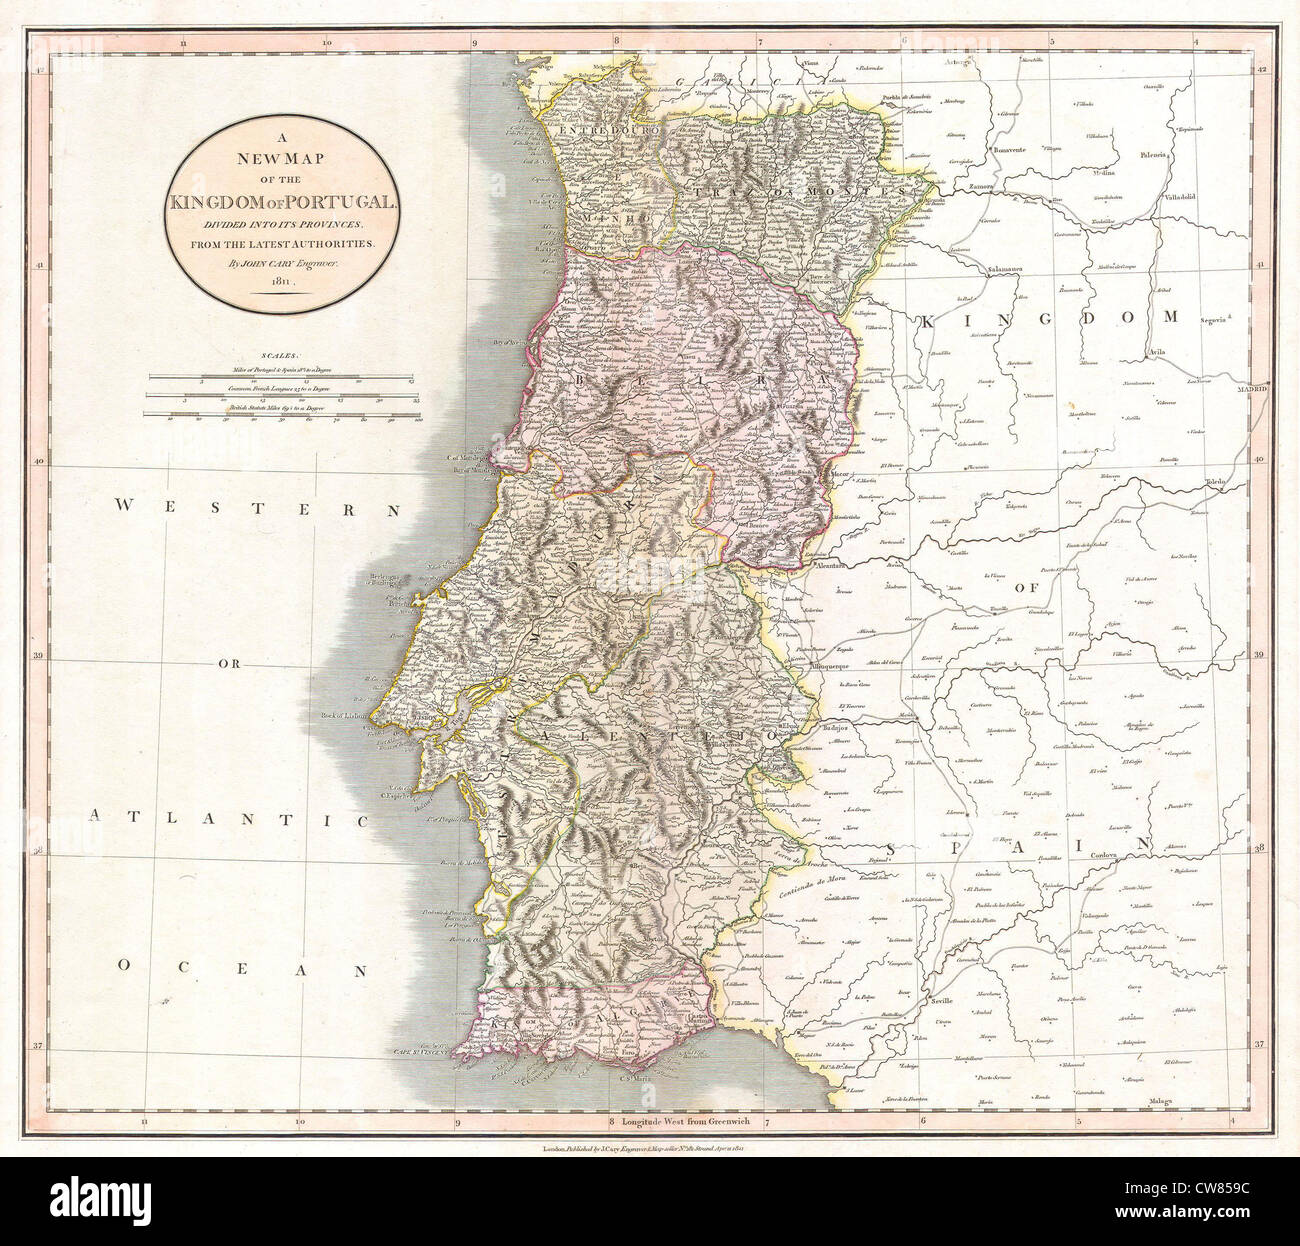 1811 Cary Map of the Kingdom of Portugal - Stock Image